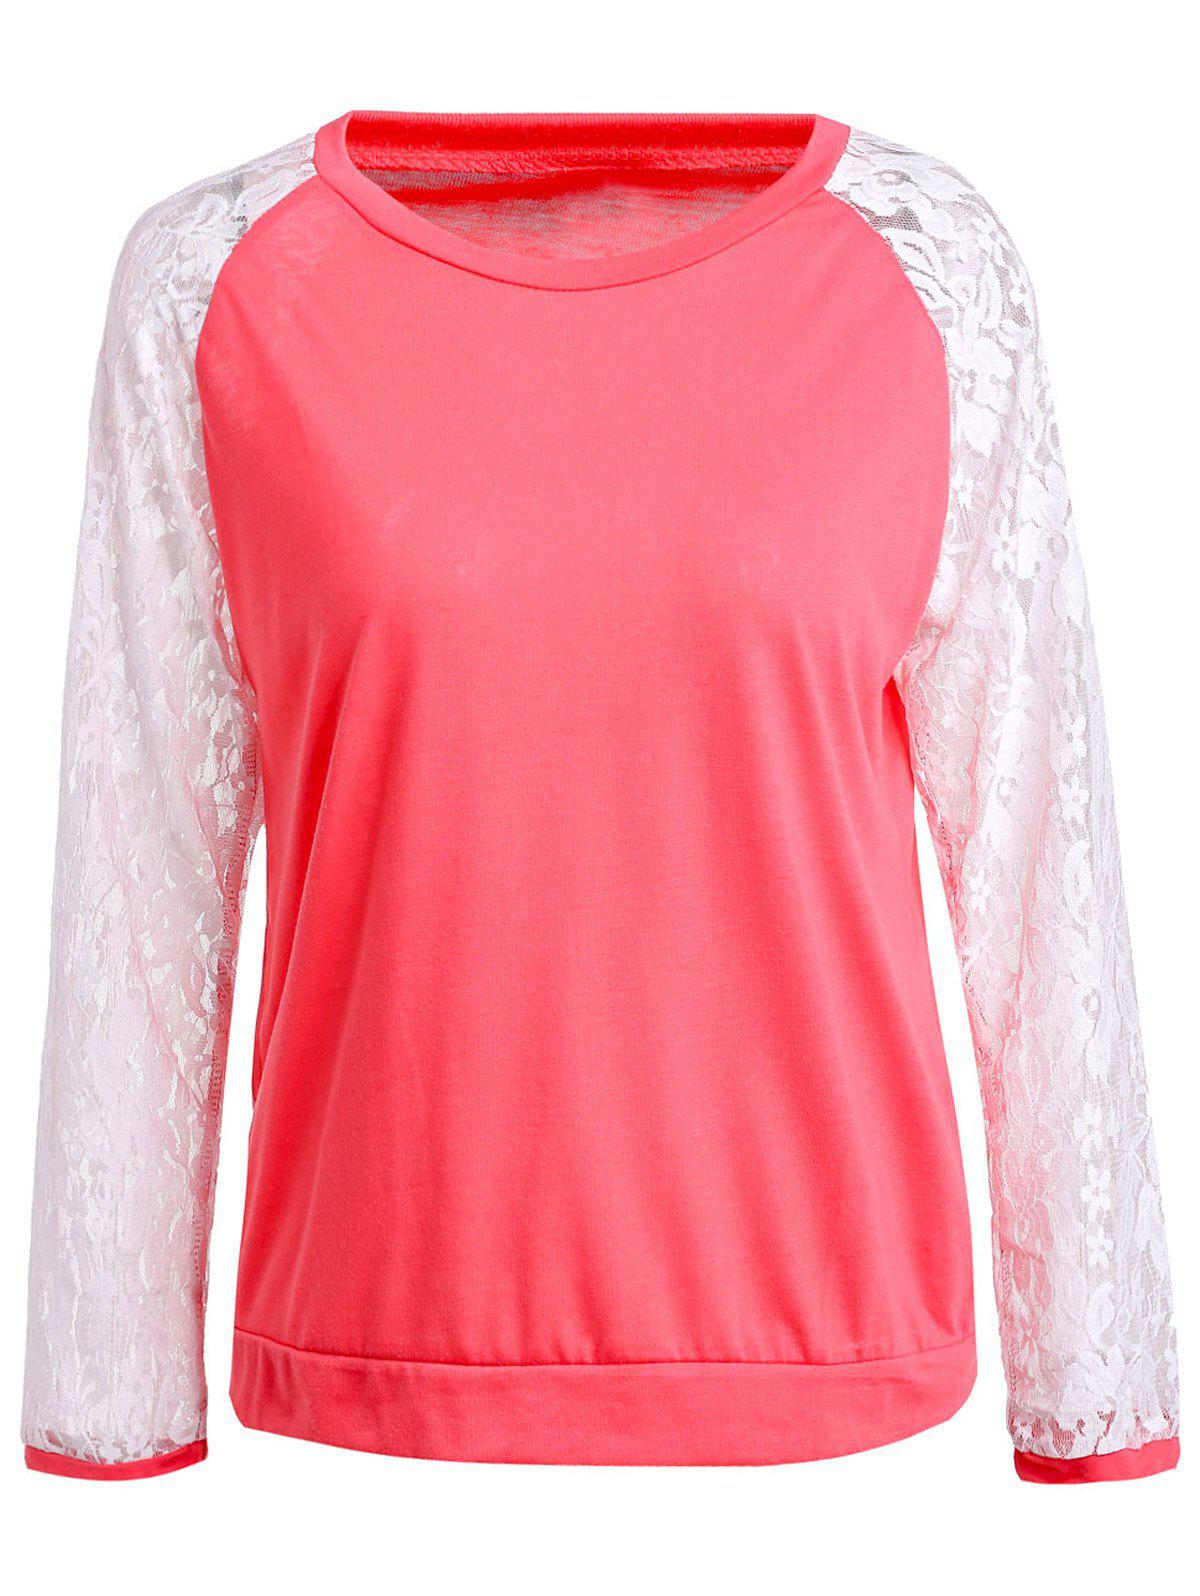 Sweet Lace Splicing Round Neck Long Sleeve Sweatshirt For Women - RED L